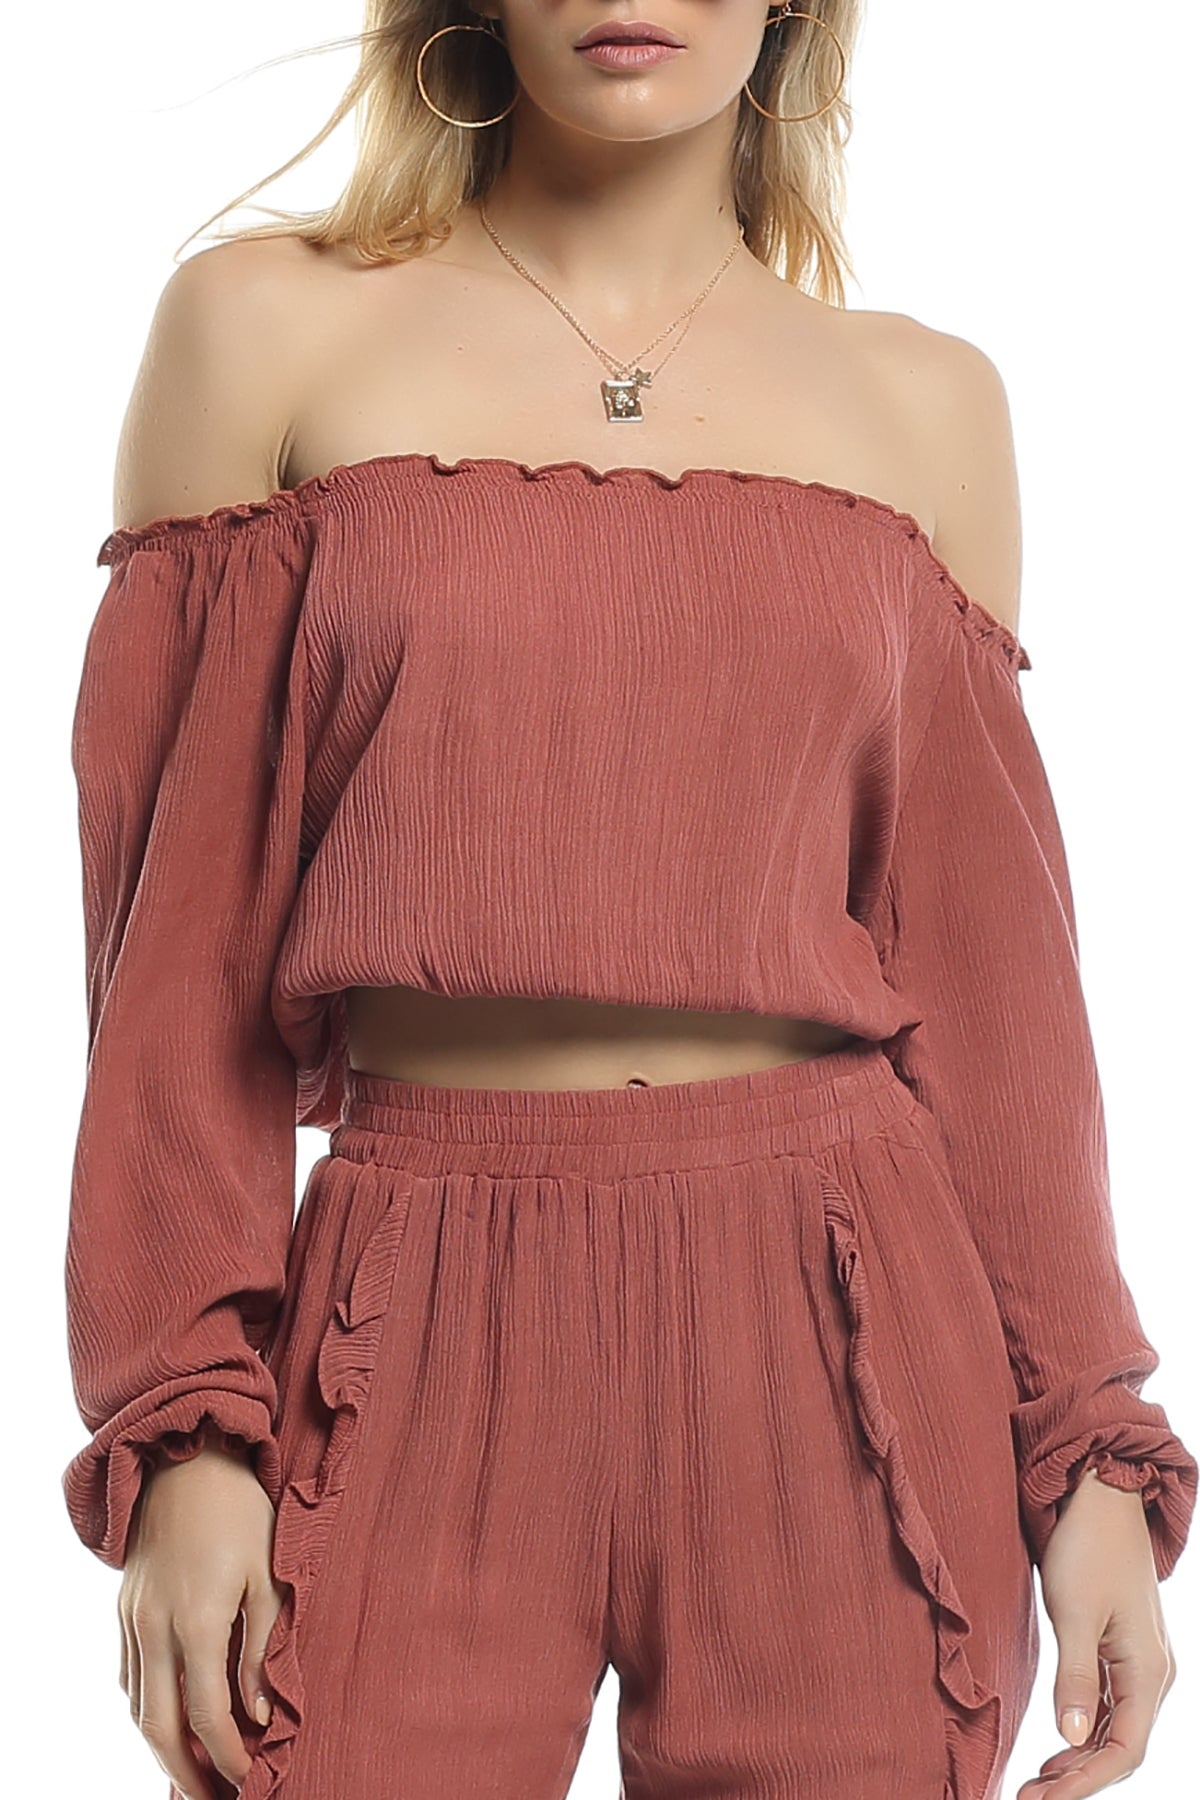 CRAZY LOVE TOP - NEW NEW